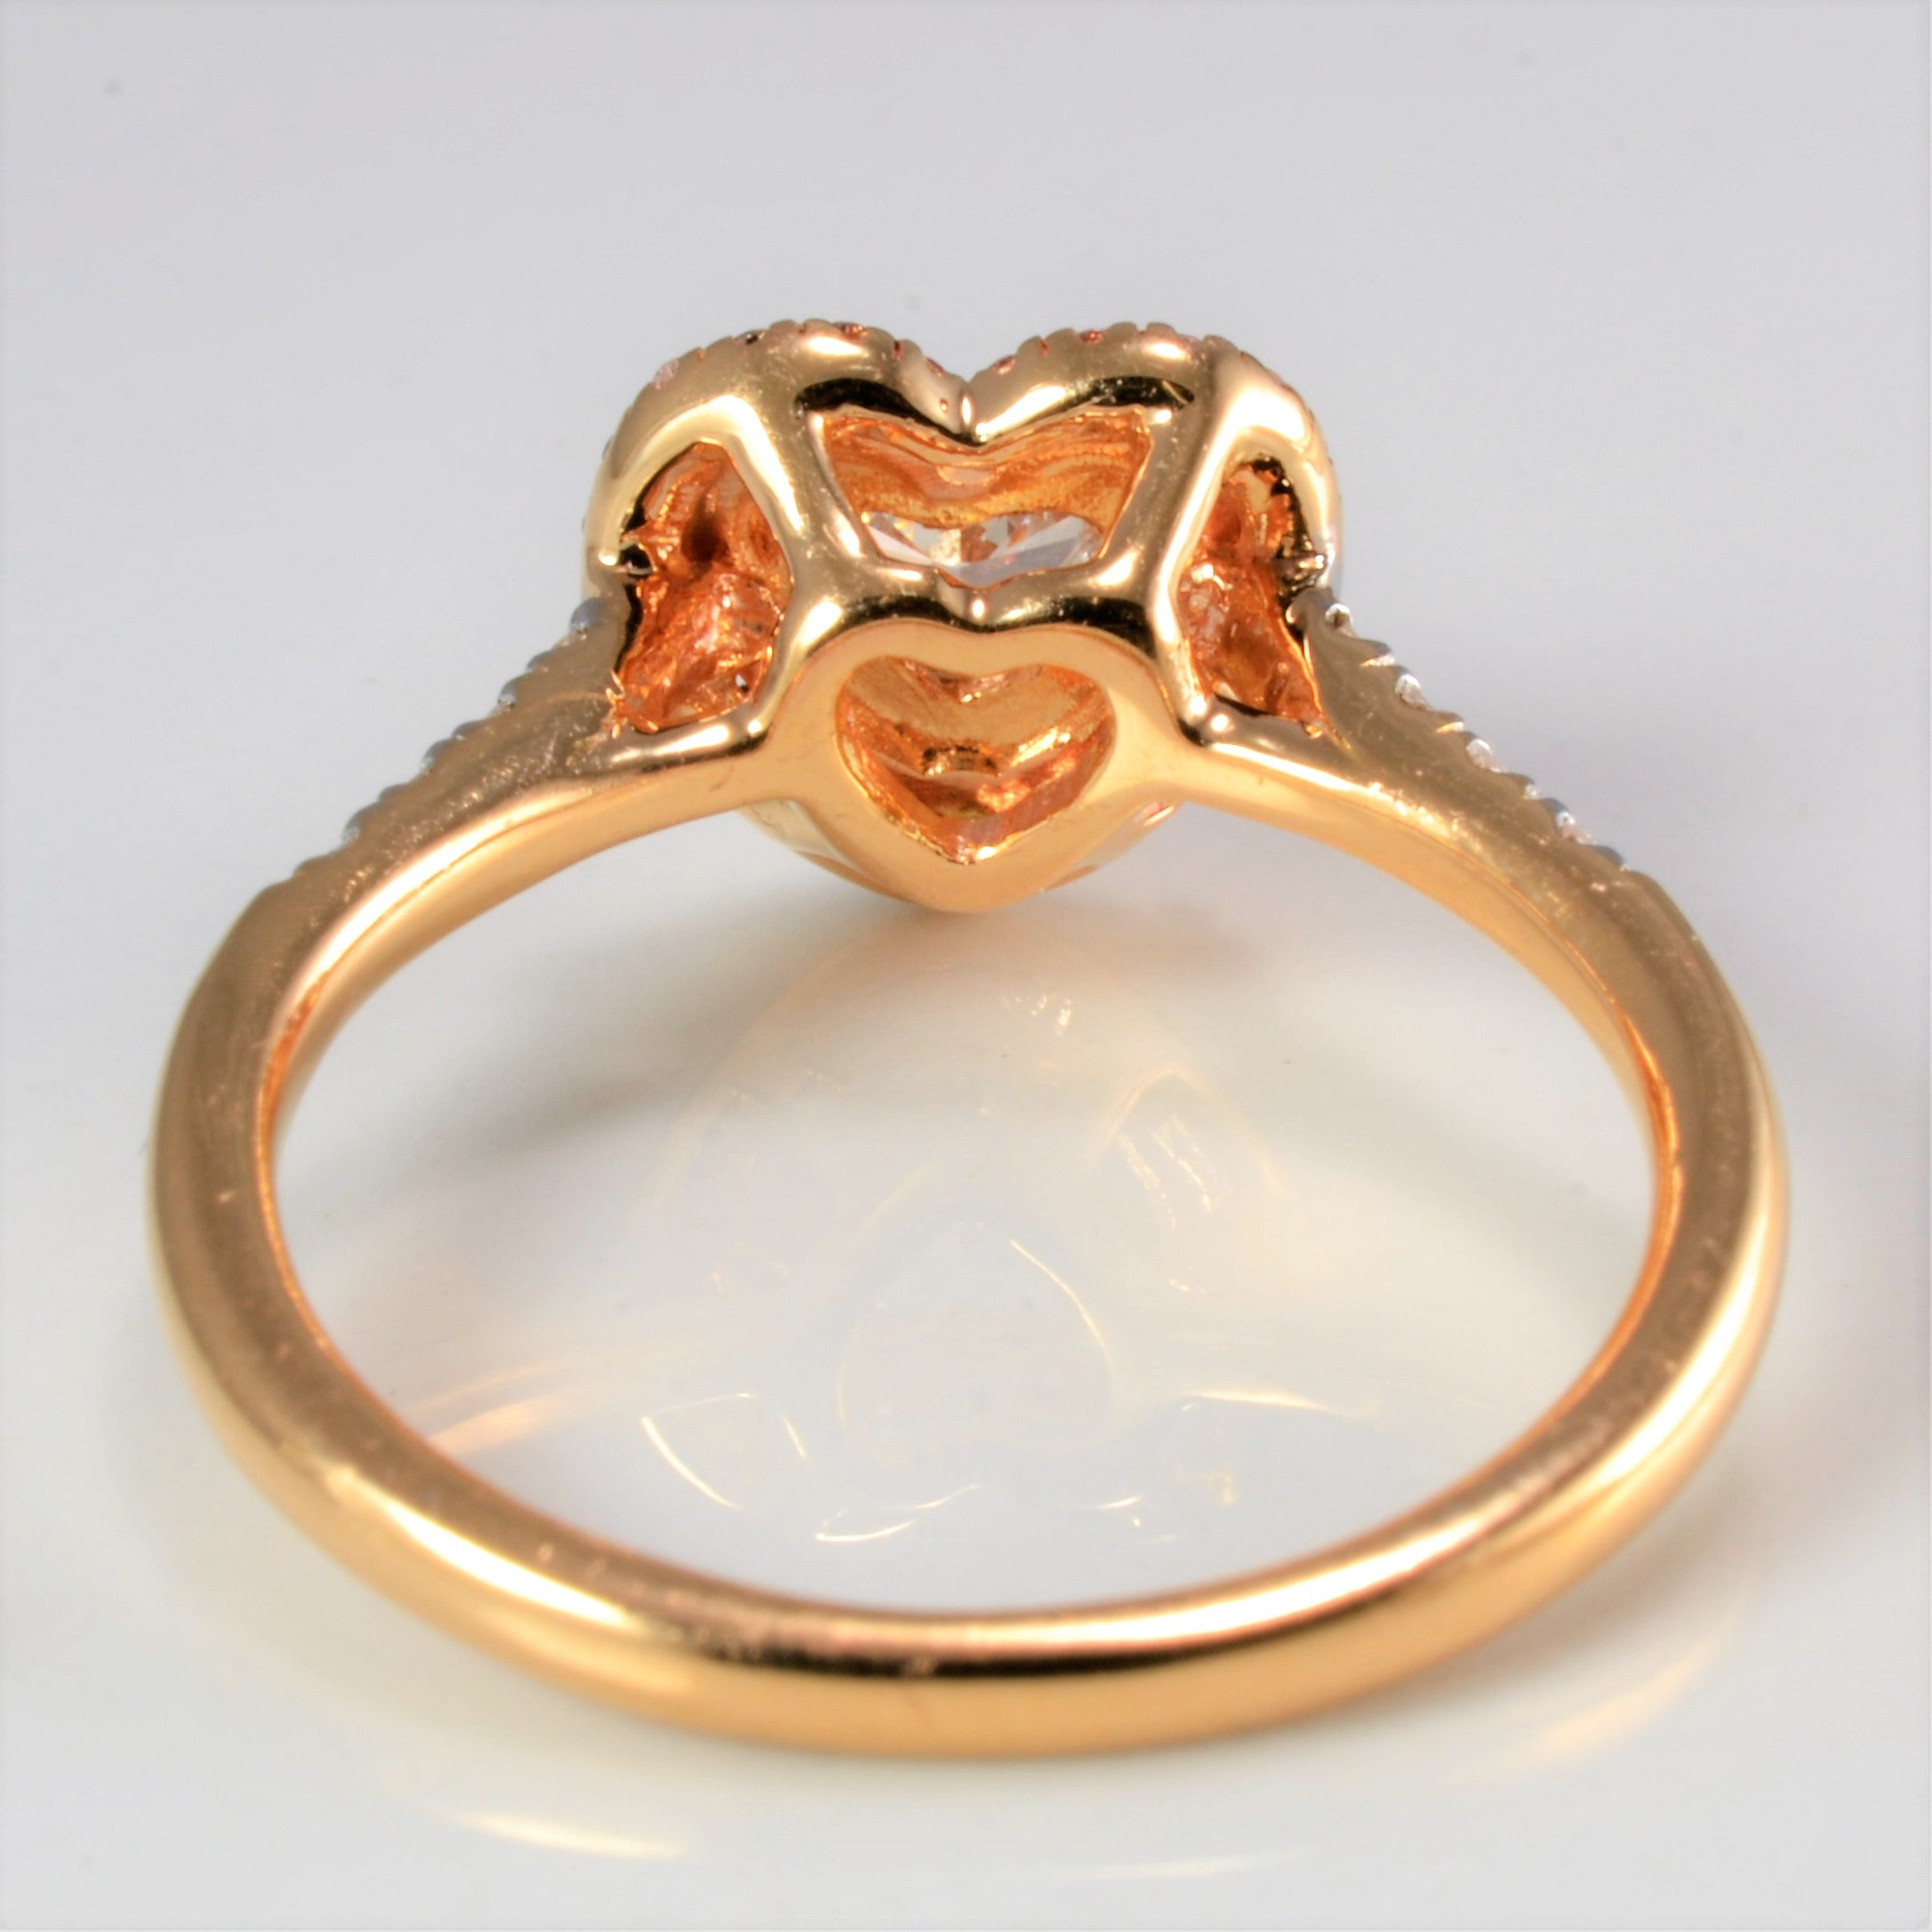 Diamond Halo Heart Design Engagement Ring | 0.50 ctw, SZ 6.5 |